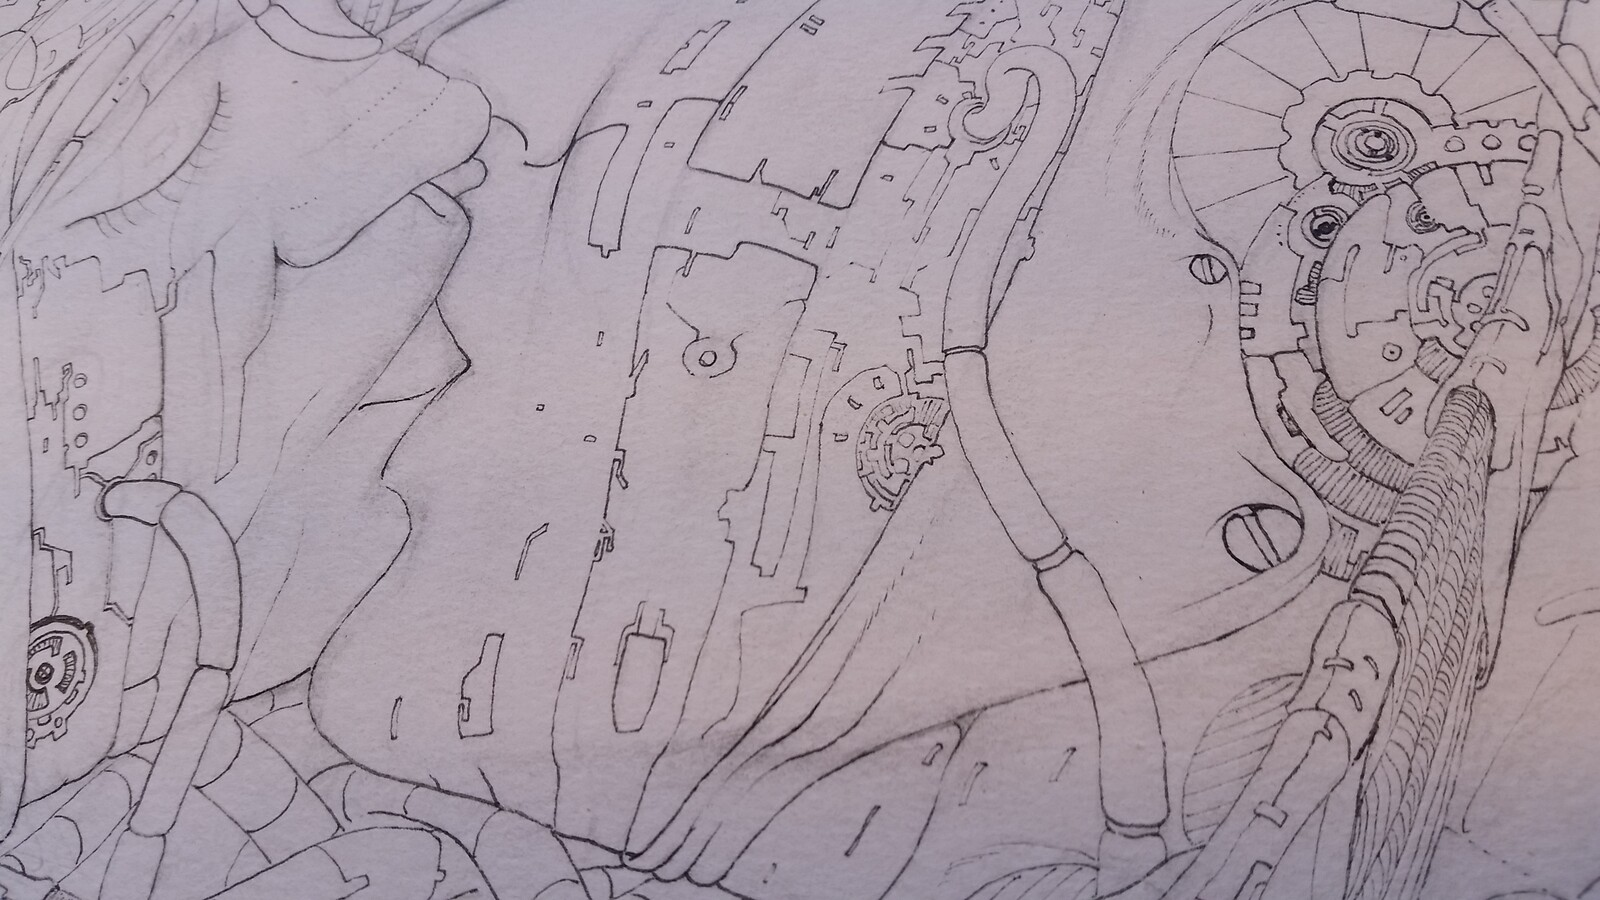 Work in progress: First ink layer, defining the outlines (Detail).